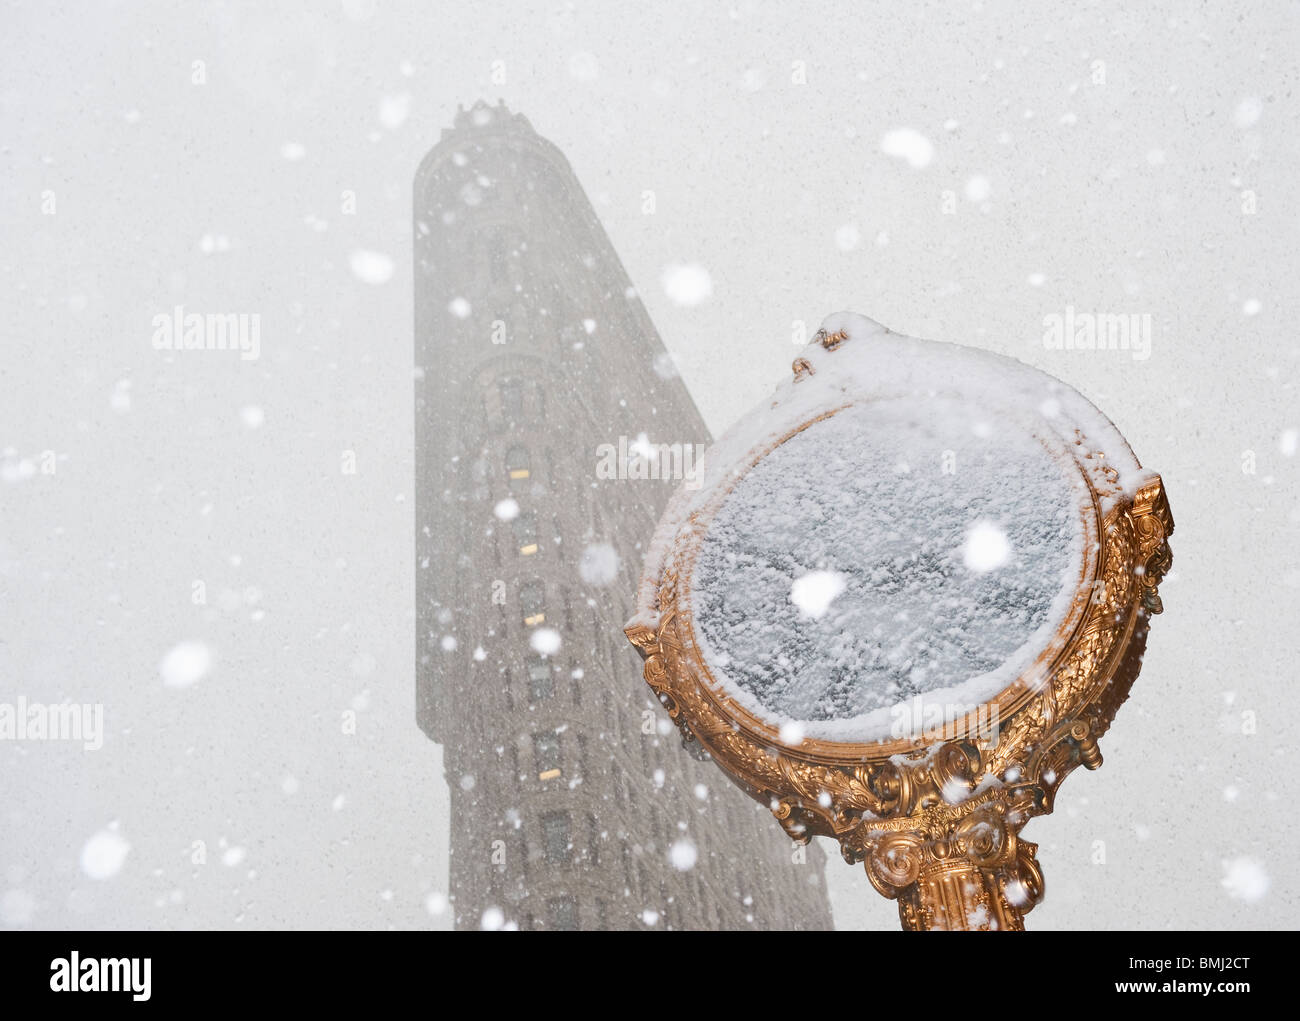 Snowy day in urban setting - Stock Image